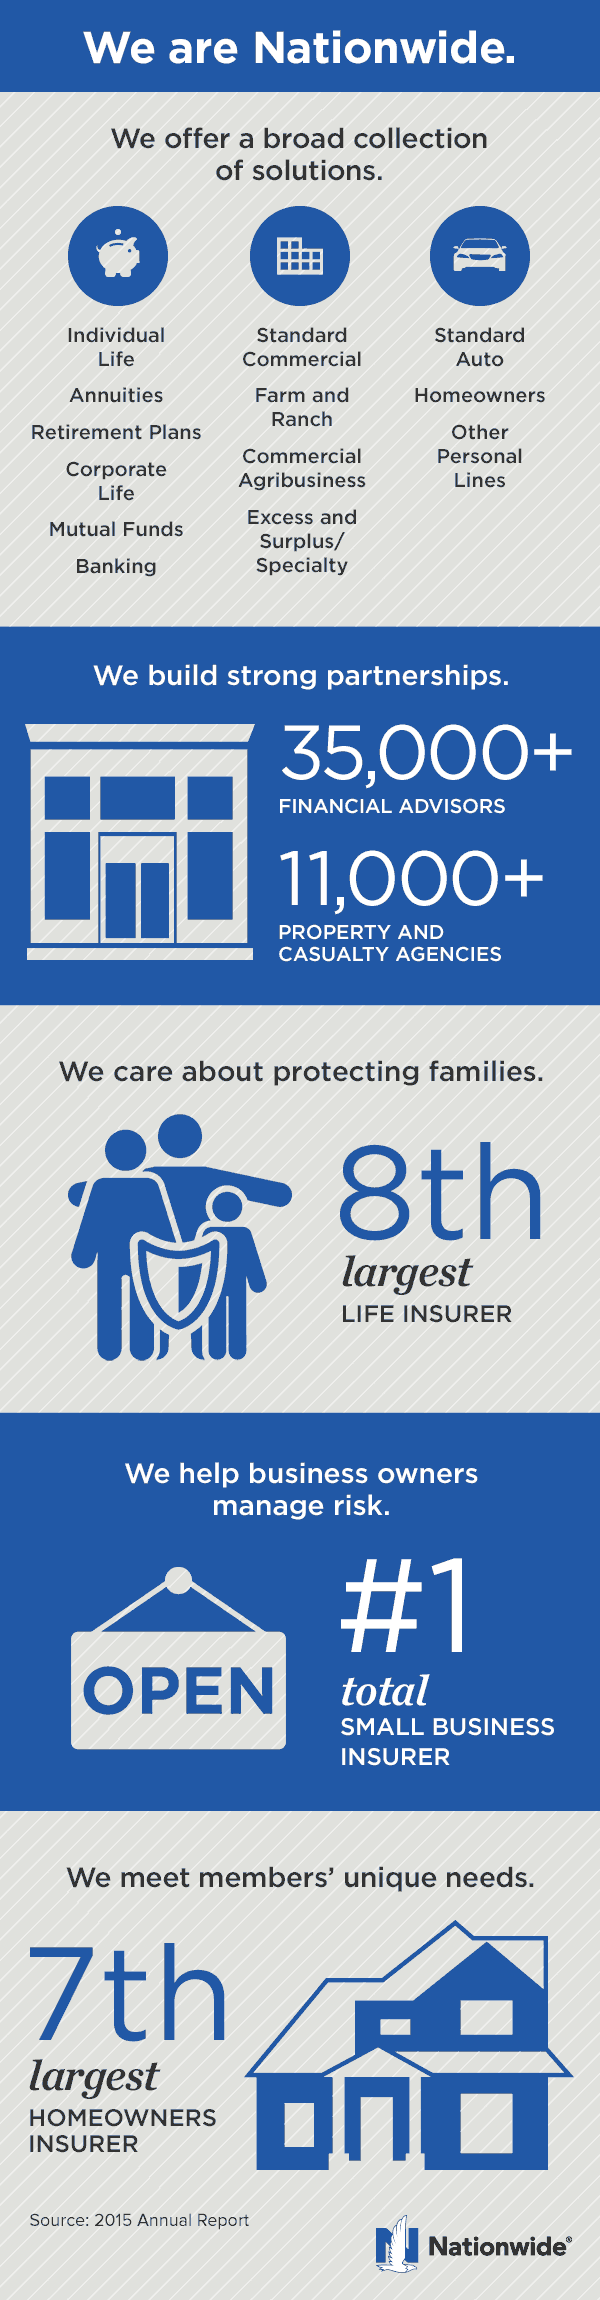 nationwide insurance 2016 annual report  | Nationwide Annual Report | Nationwide.com